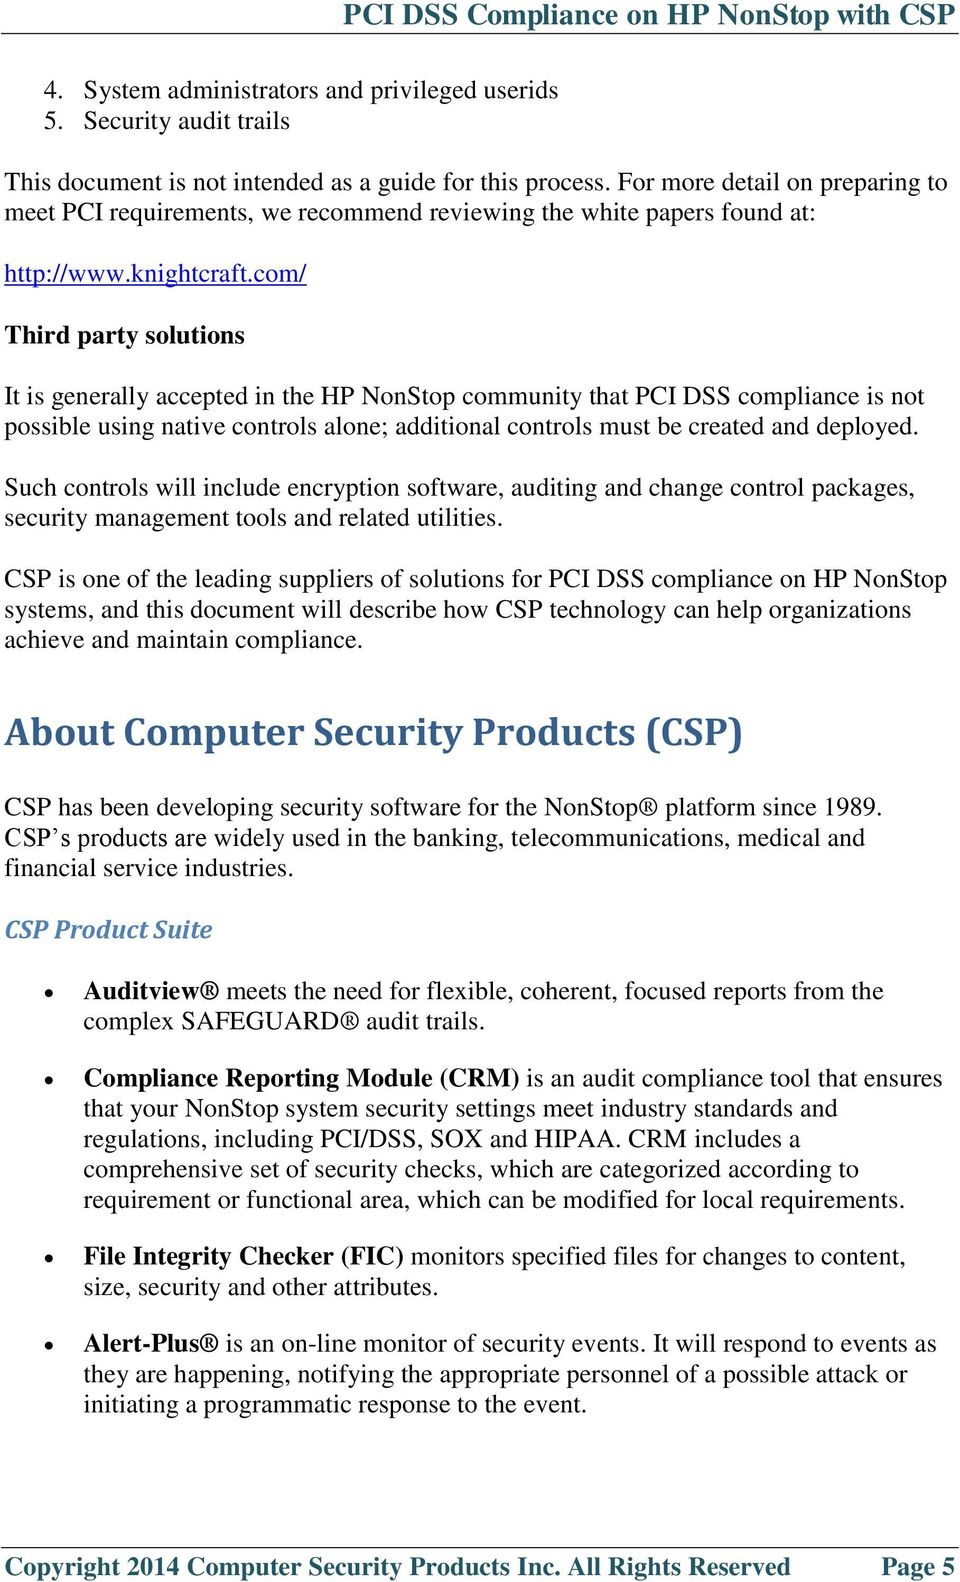 com/ Third party solutions It is generally accepted in the HP NonStop community that PCI DSS compliance is not possible using native controls alone; additional controls must be created and deployed.